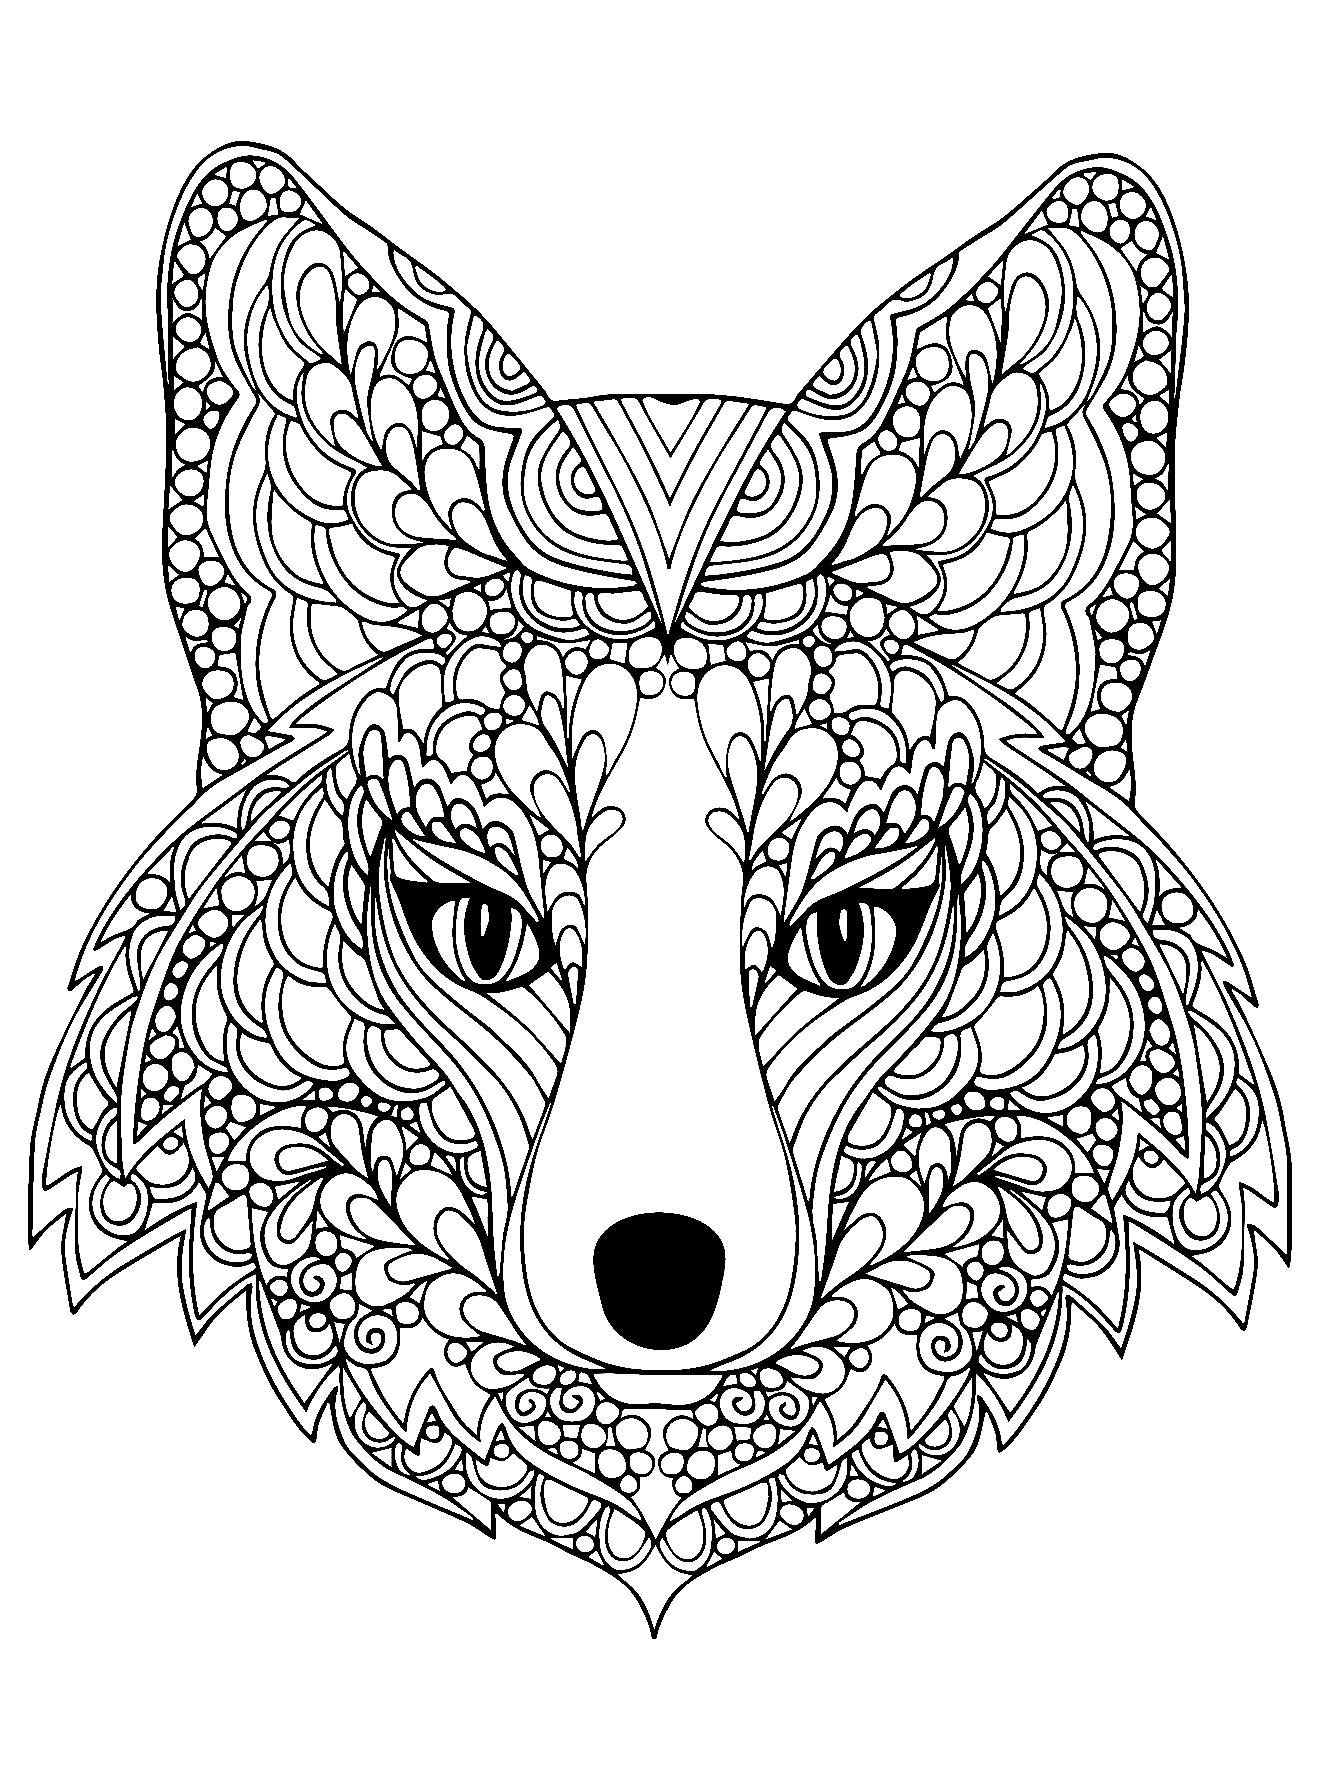 adult coloring pages animals beutiful fox head animals coloring pages for adults pages animals coloring adult